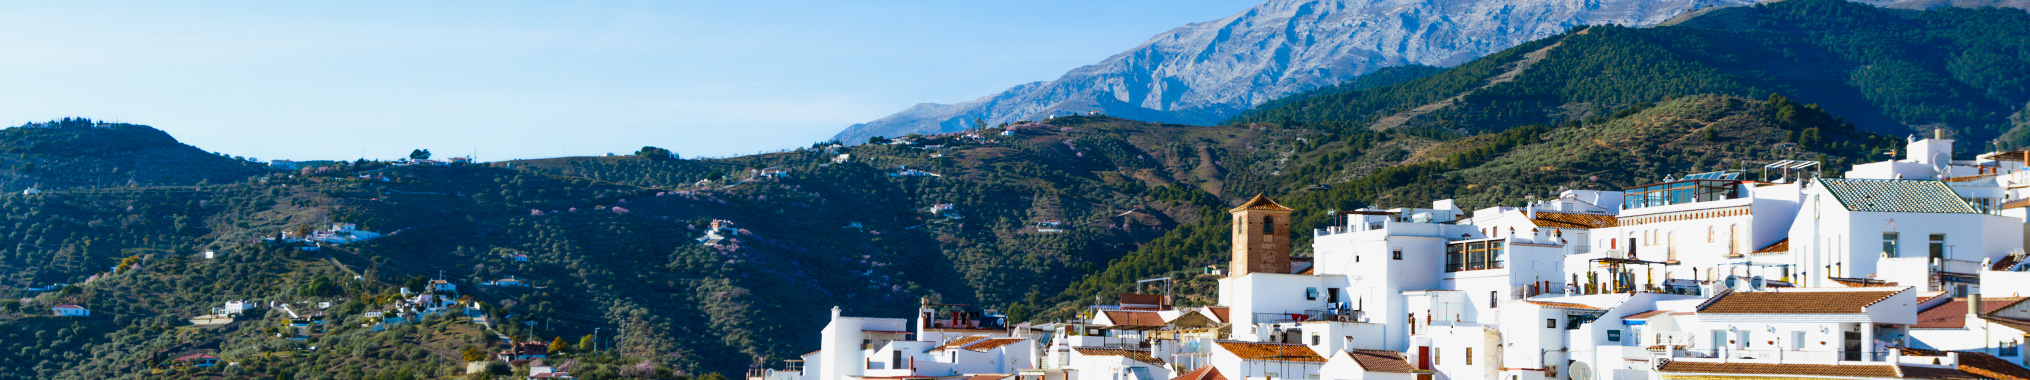 White Villages and Mountains